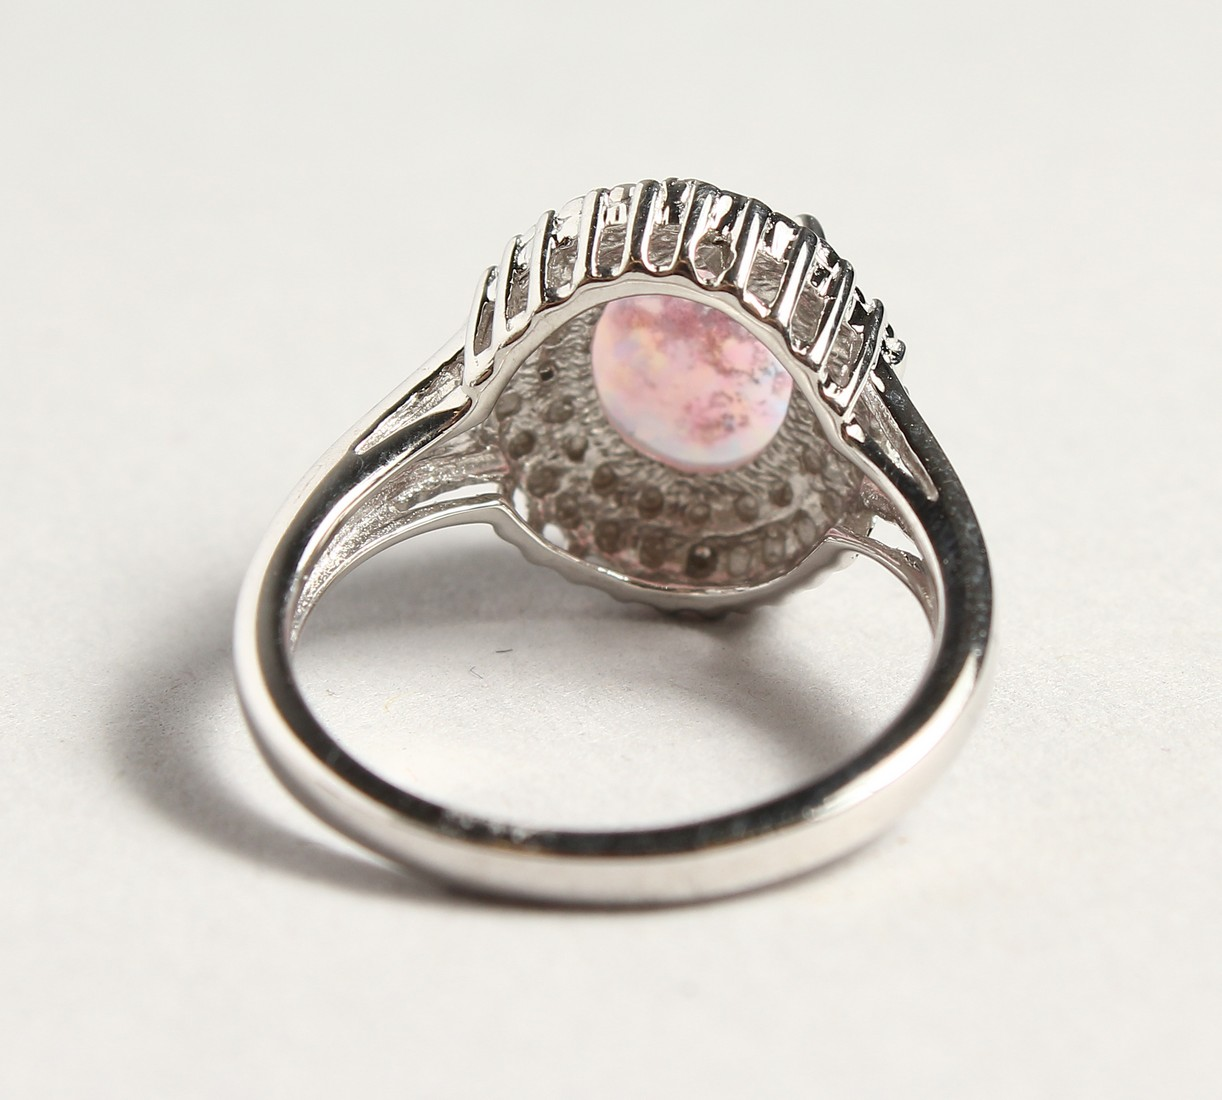 A SILVER OPALITE AND DIAMOND CLUSTER RING - Image 5 of 6